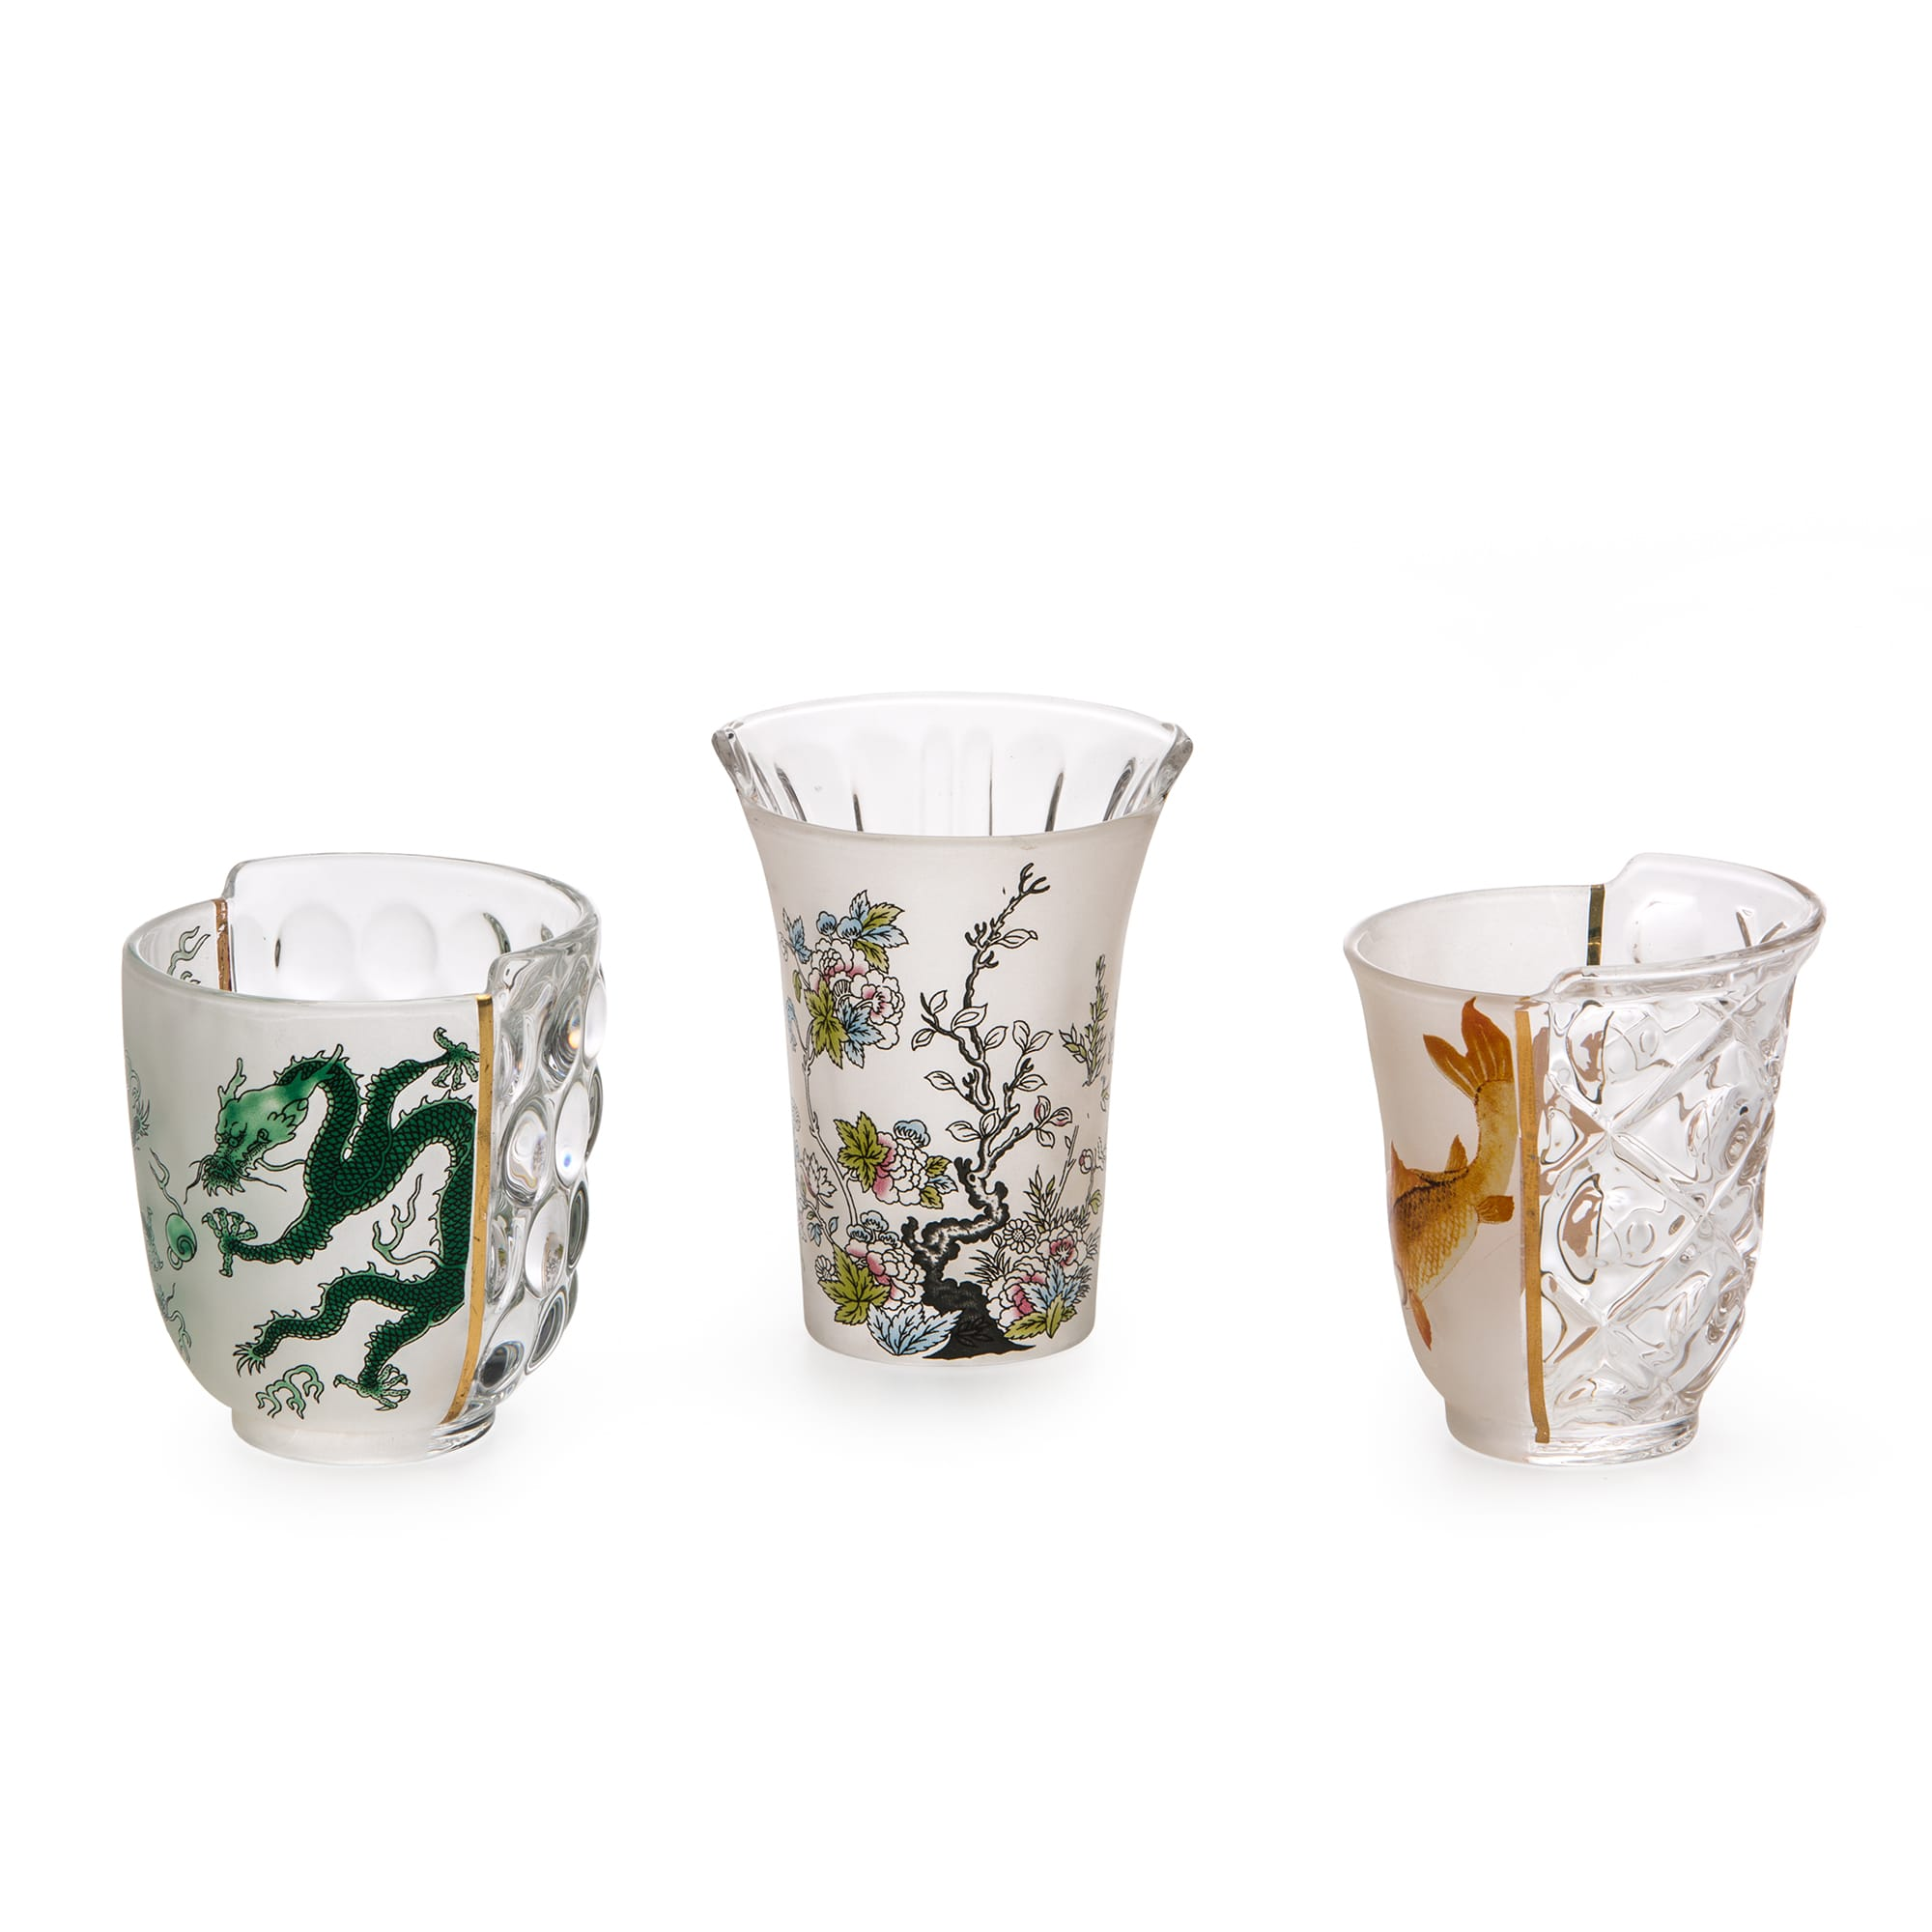 Seletti Hybrid Aglaura Glasses set of 3